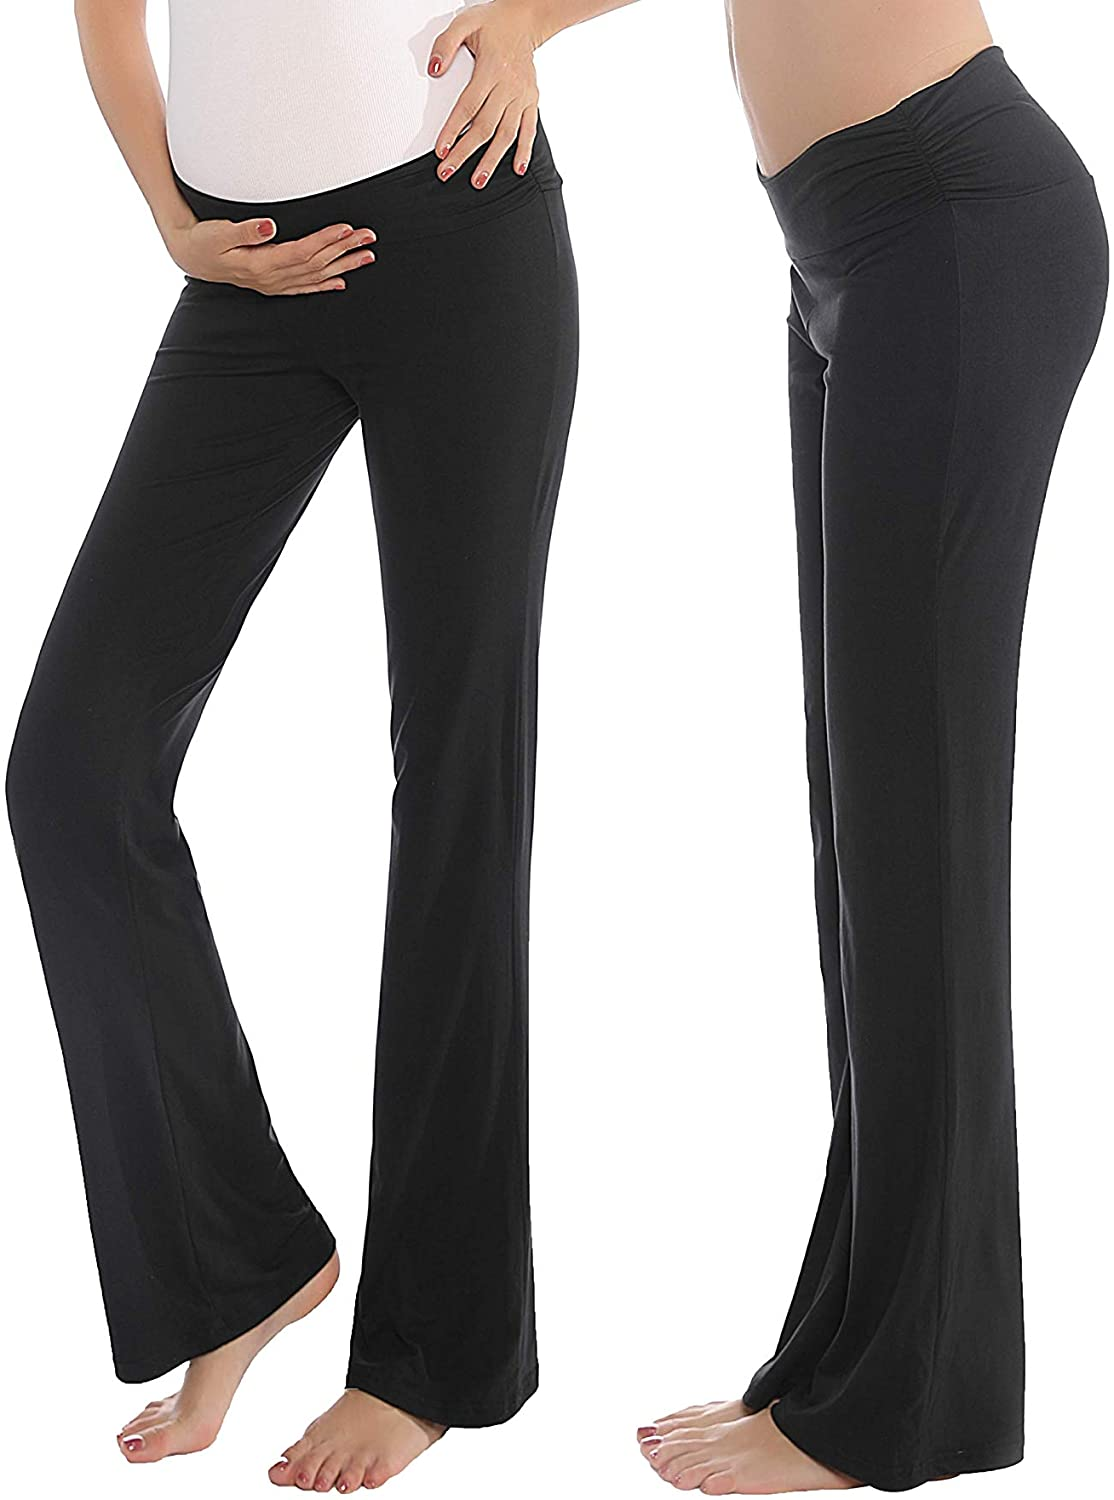 Women Maternity Pants Stretchy Comfy Wide Soft Palazzo Elastic Pregnancy Lounge Trousers